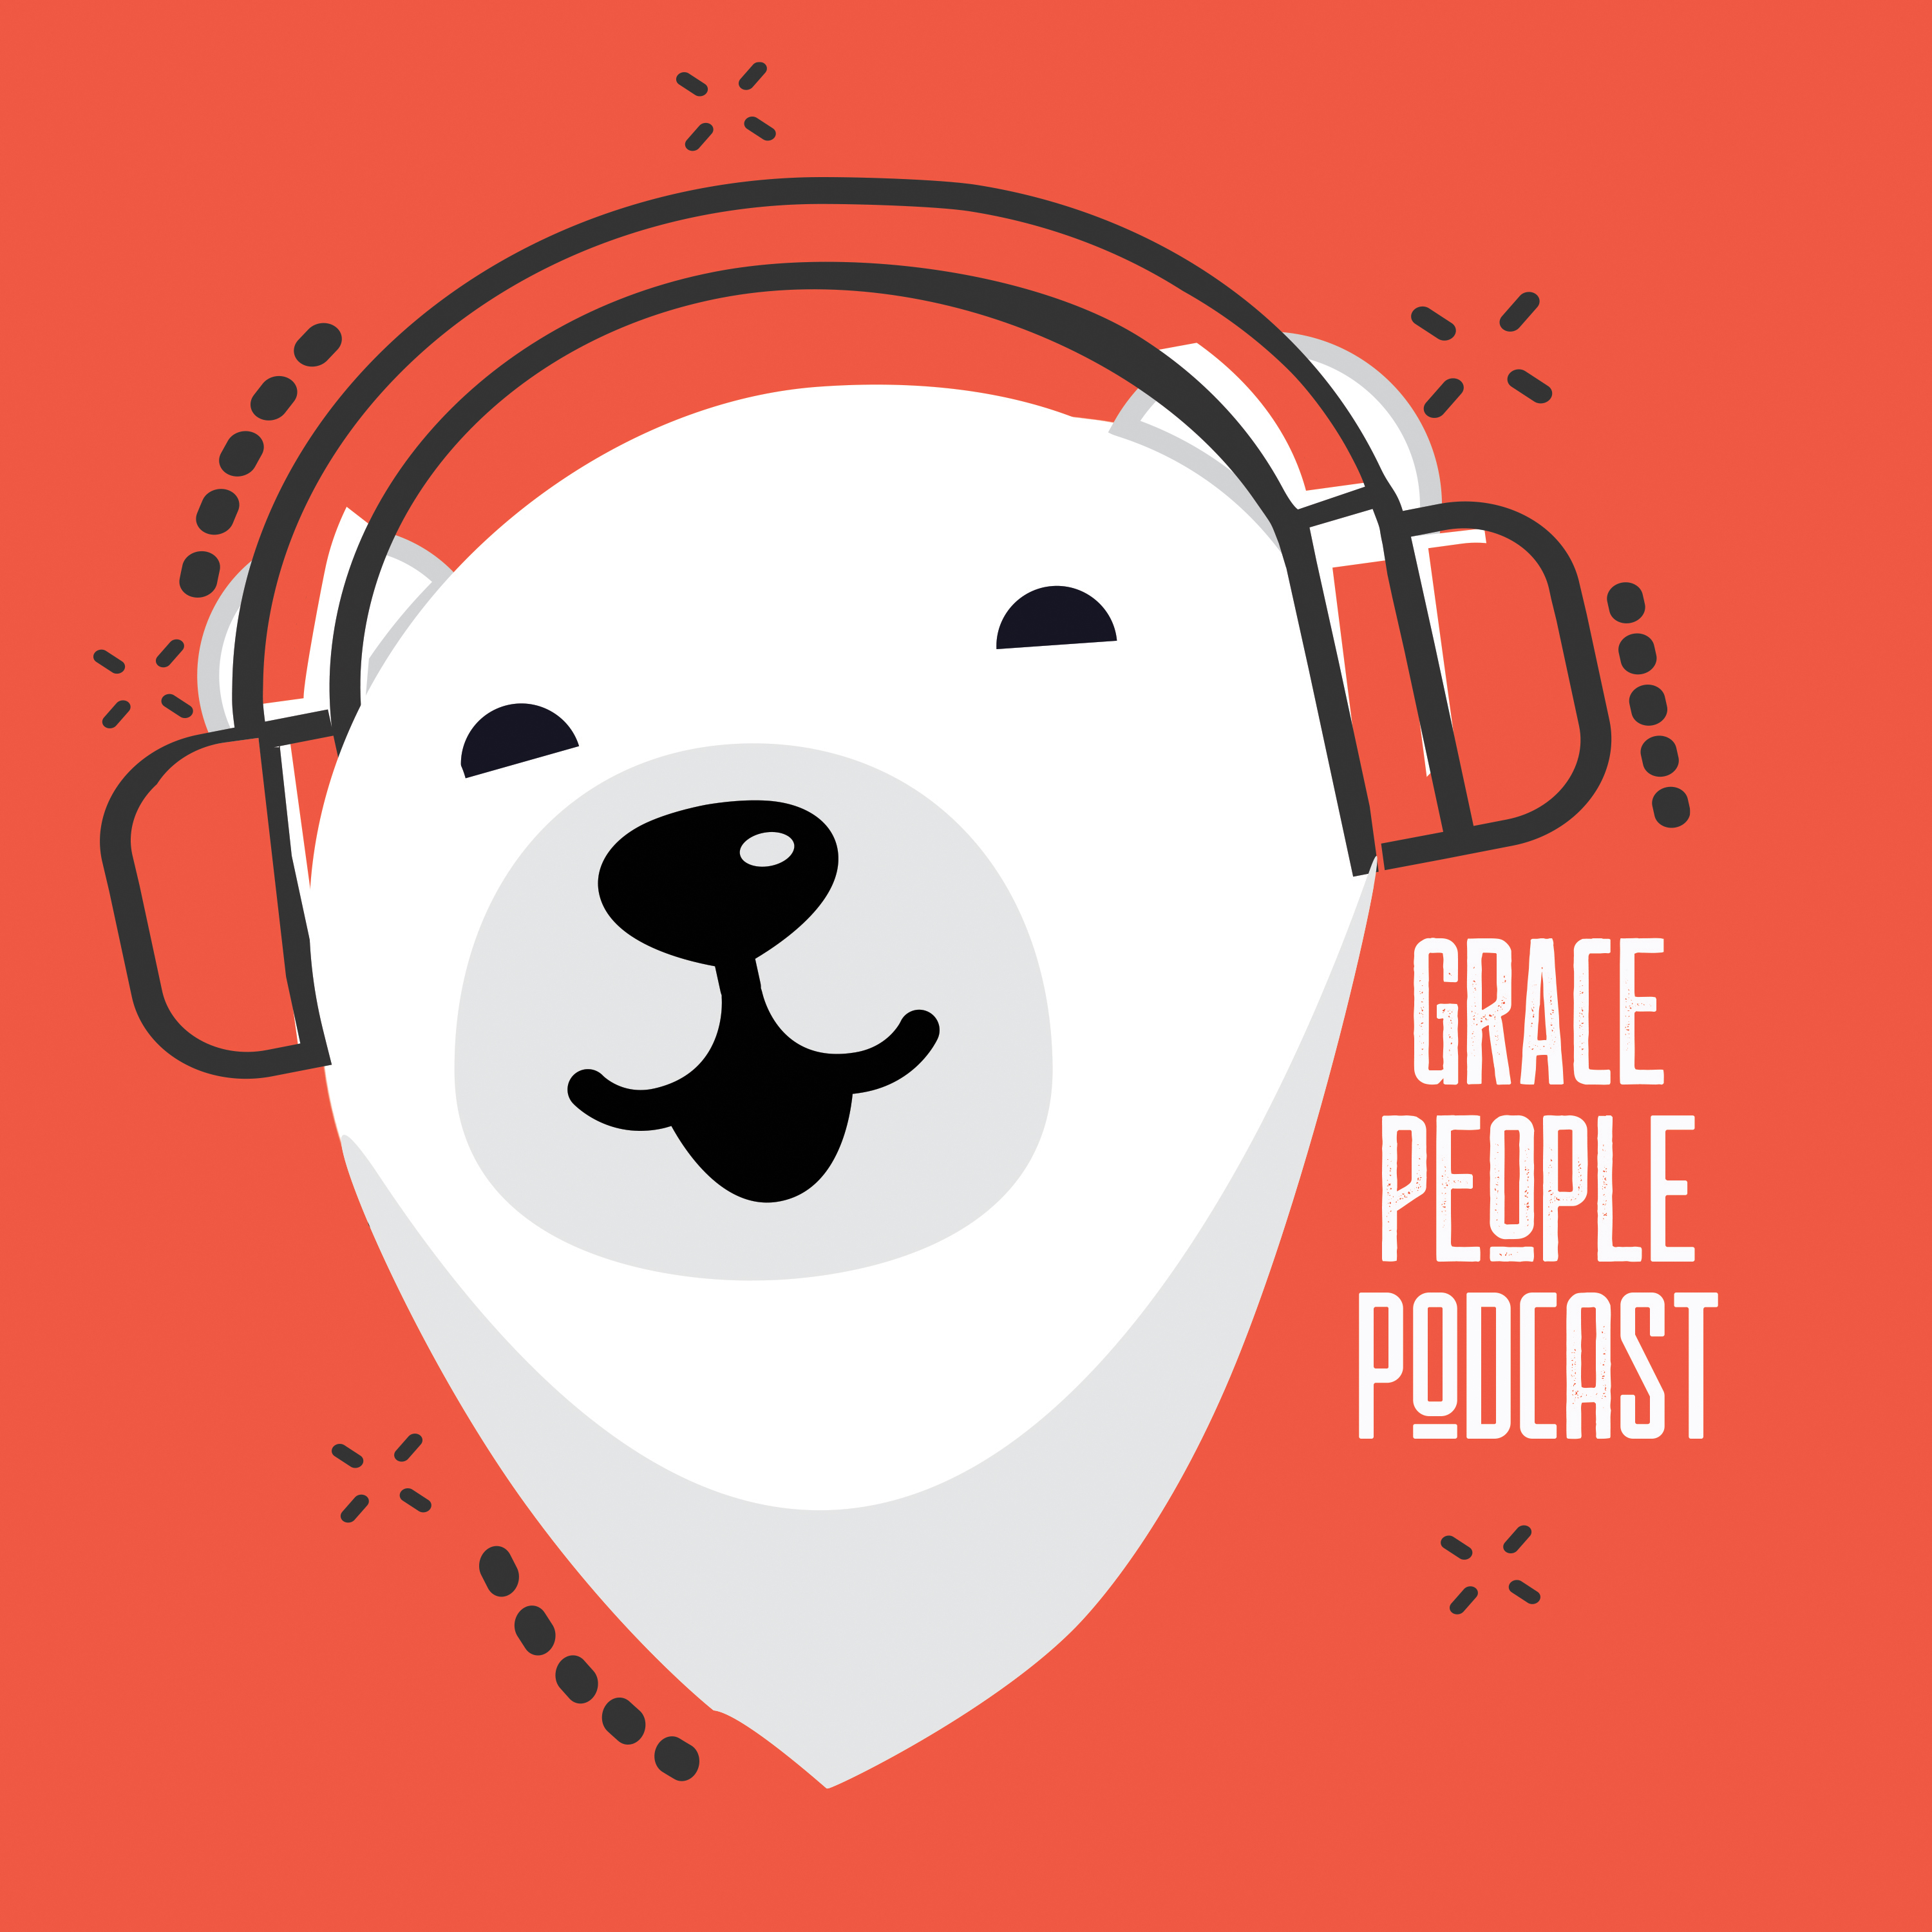 Grace People Podcast